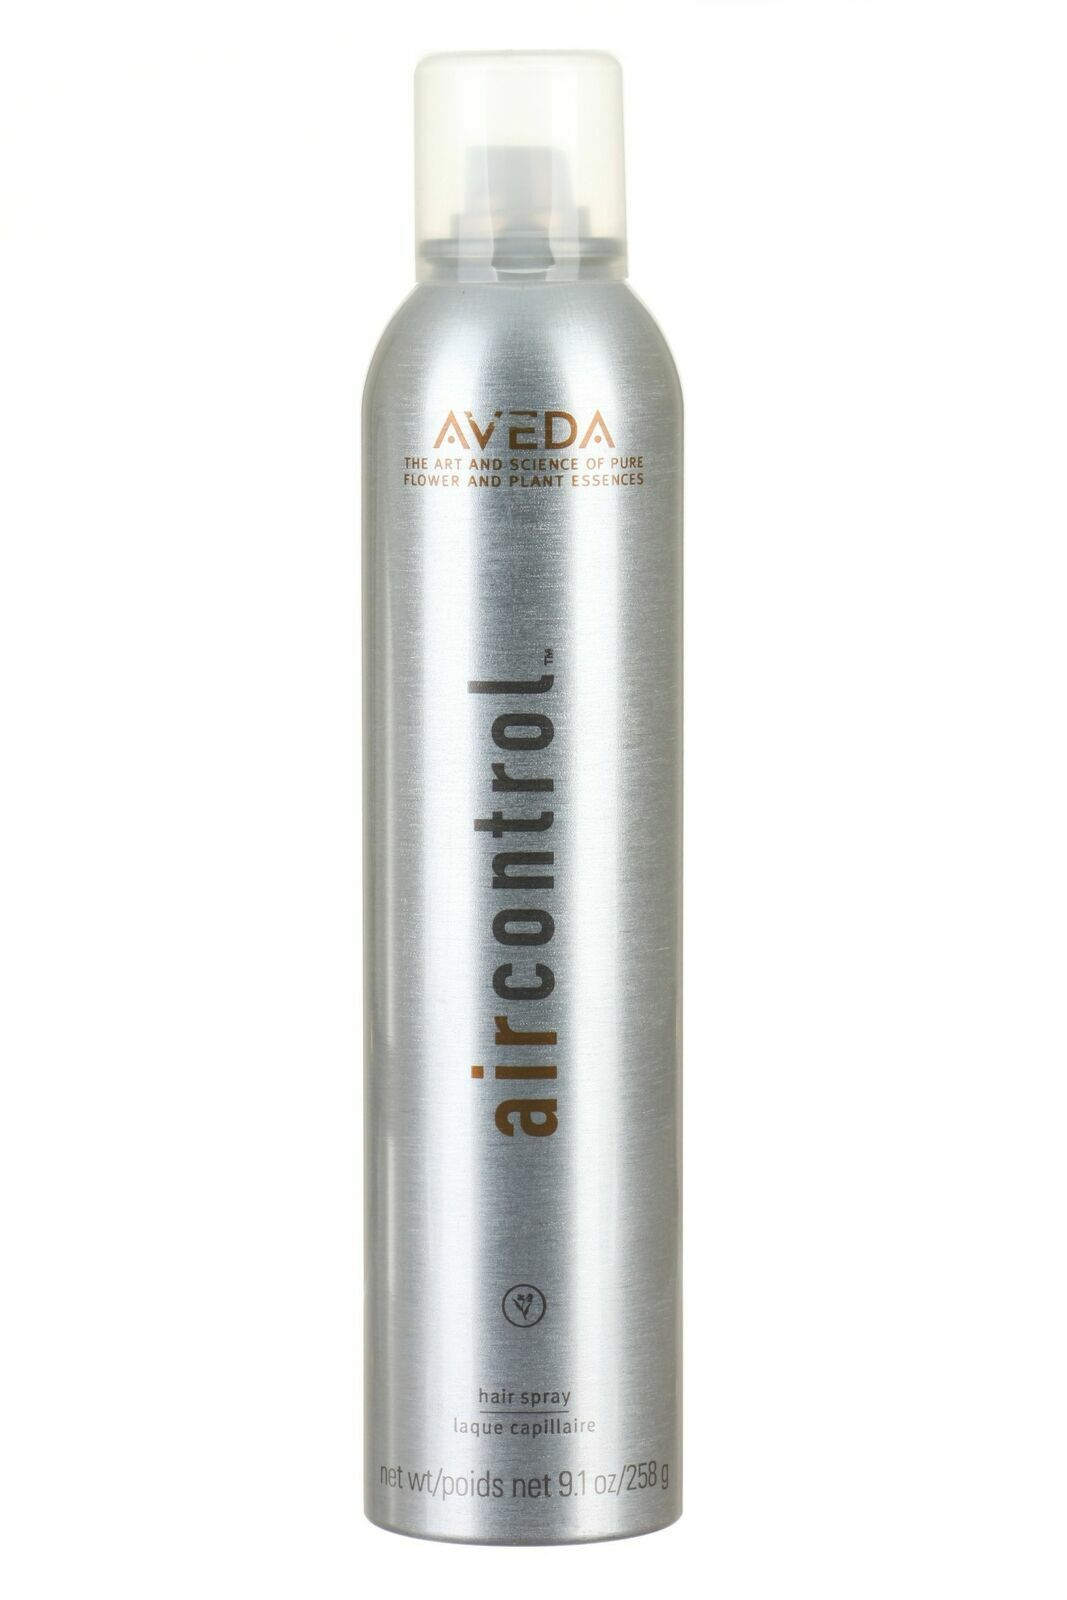 Aveda Air Control Light Hold Hairspray  FAST FREE SHIPPING